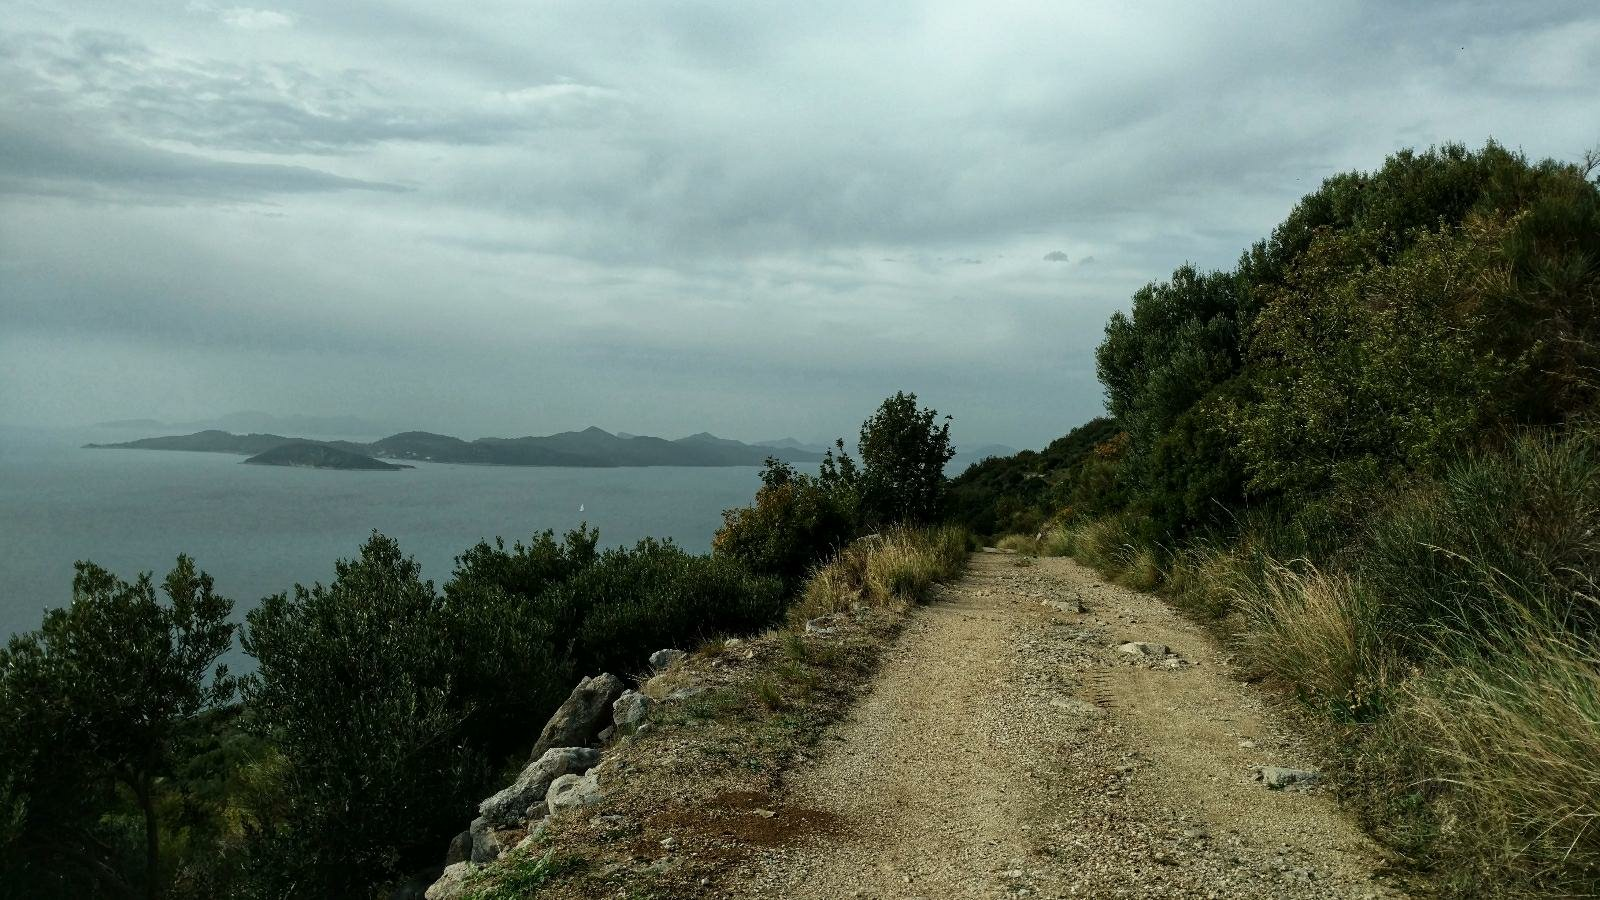 Hiking from Dubrovnik to Prapratno through the area of Dubrovnik